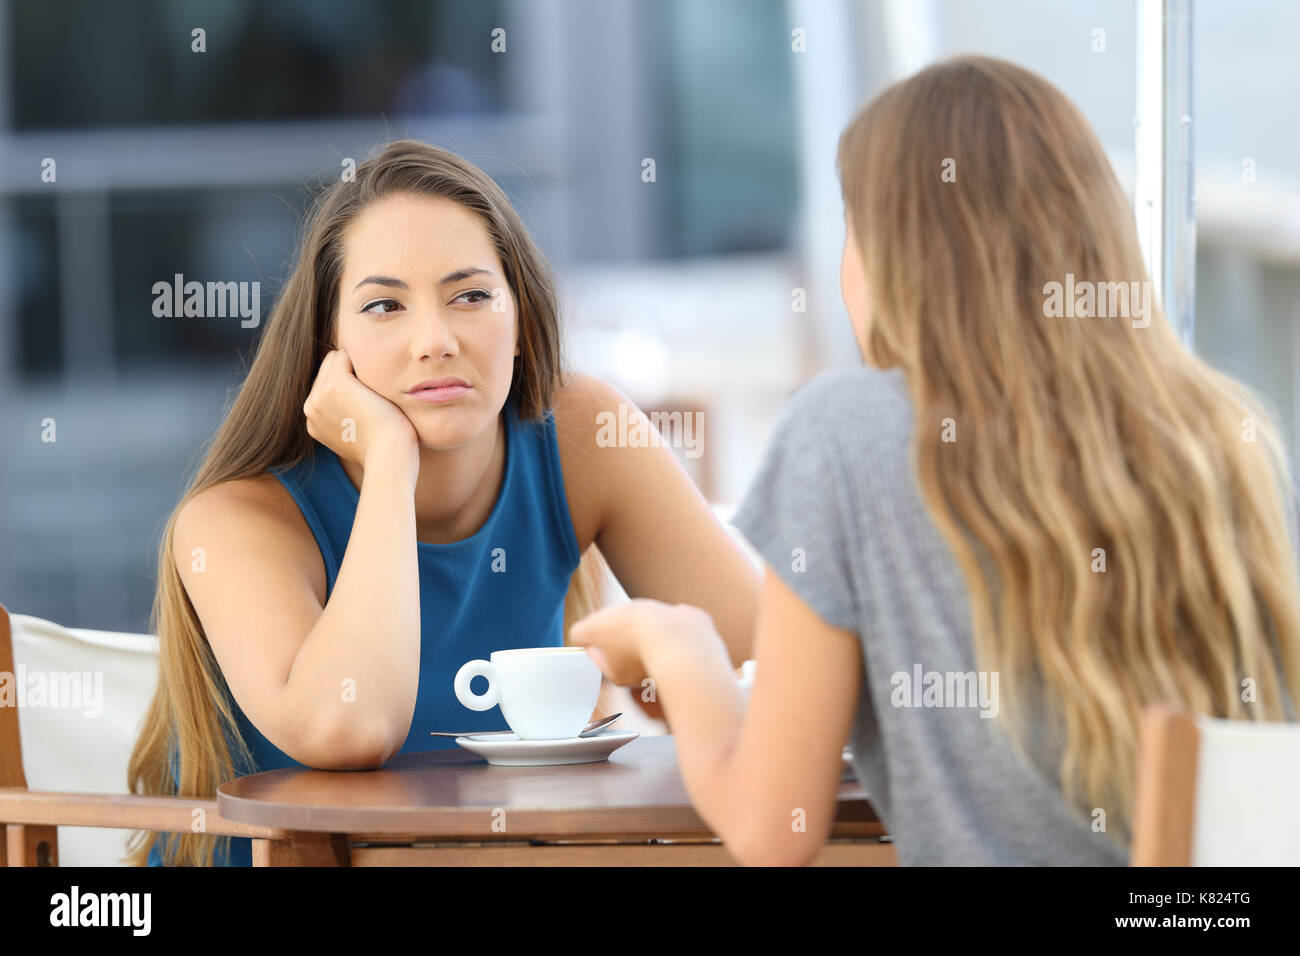 Bored girl listening a bad conversation sitting in a restaurant terrace - Stock Image